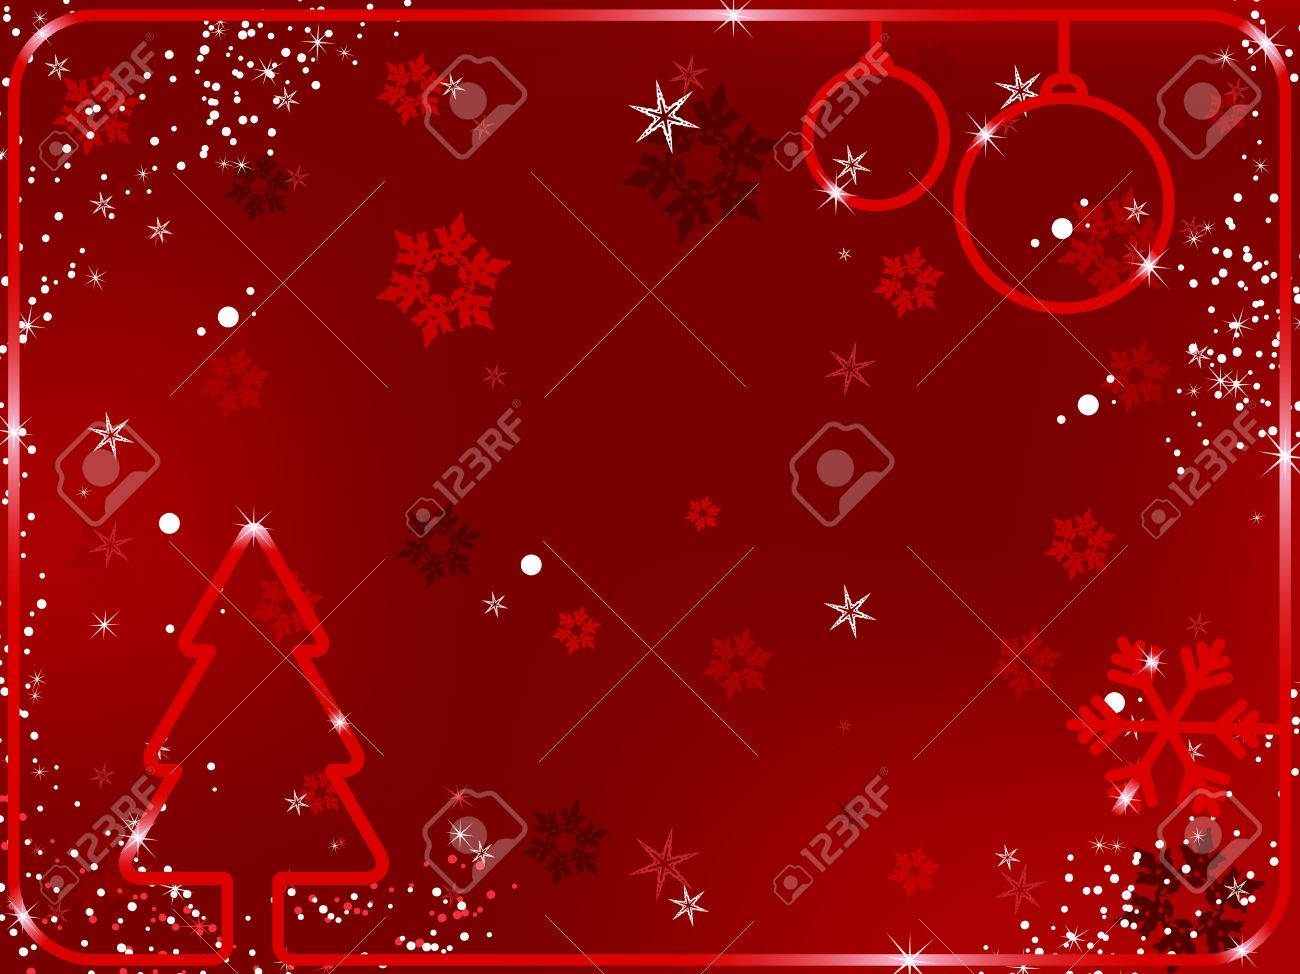 Merry Christmas Background with snowflakes and stars.Vector Image. Stock Vector - 5899462